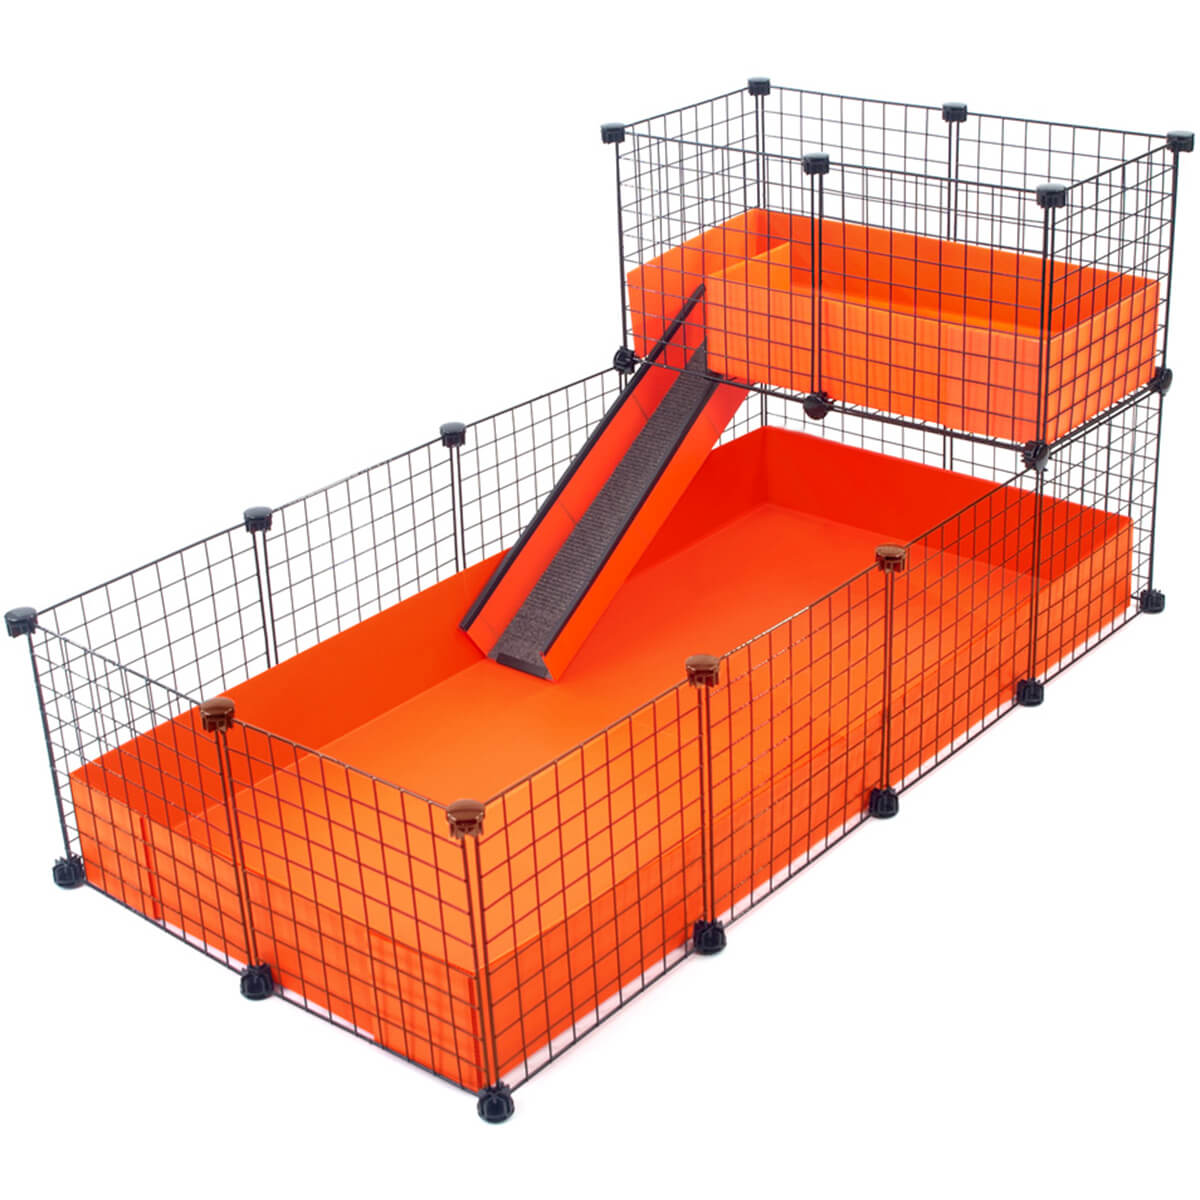 Large 2x4 grids narrow loft deluxe cages c c cages for Coroplast guinea pig cage for sale